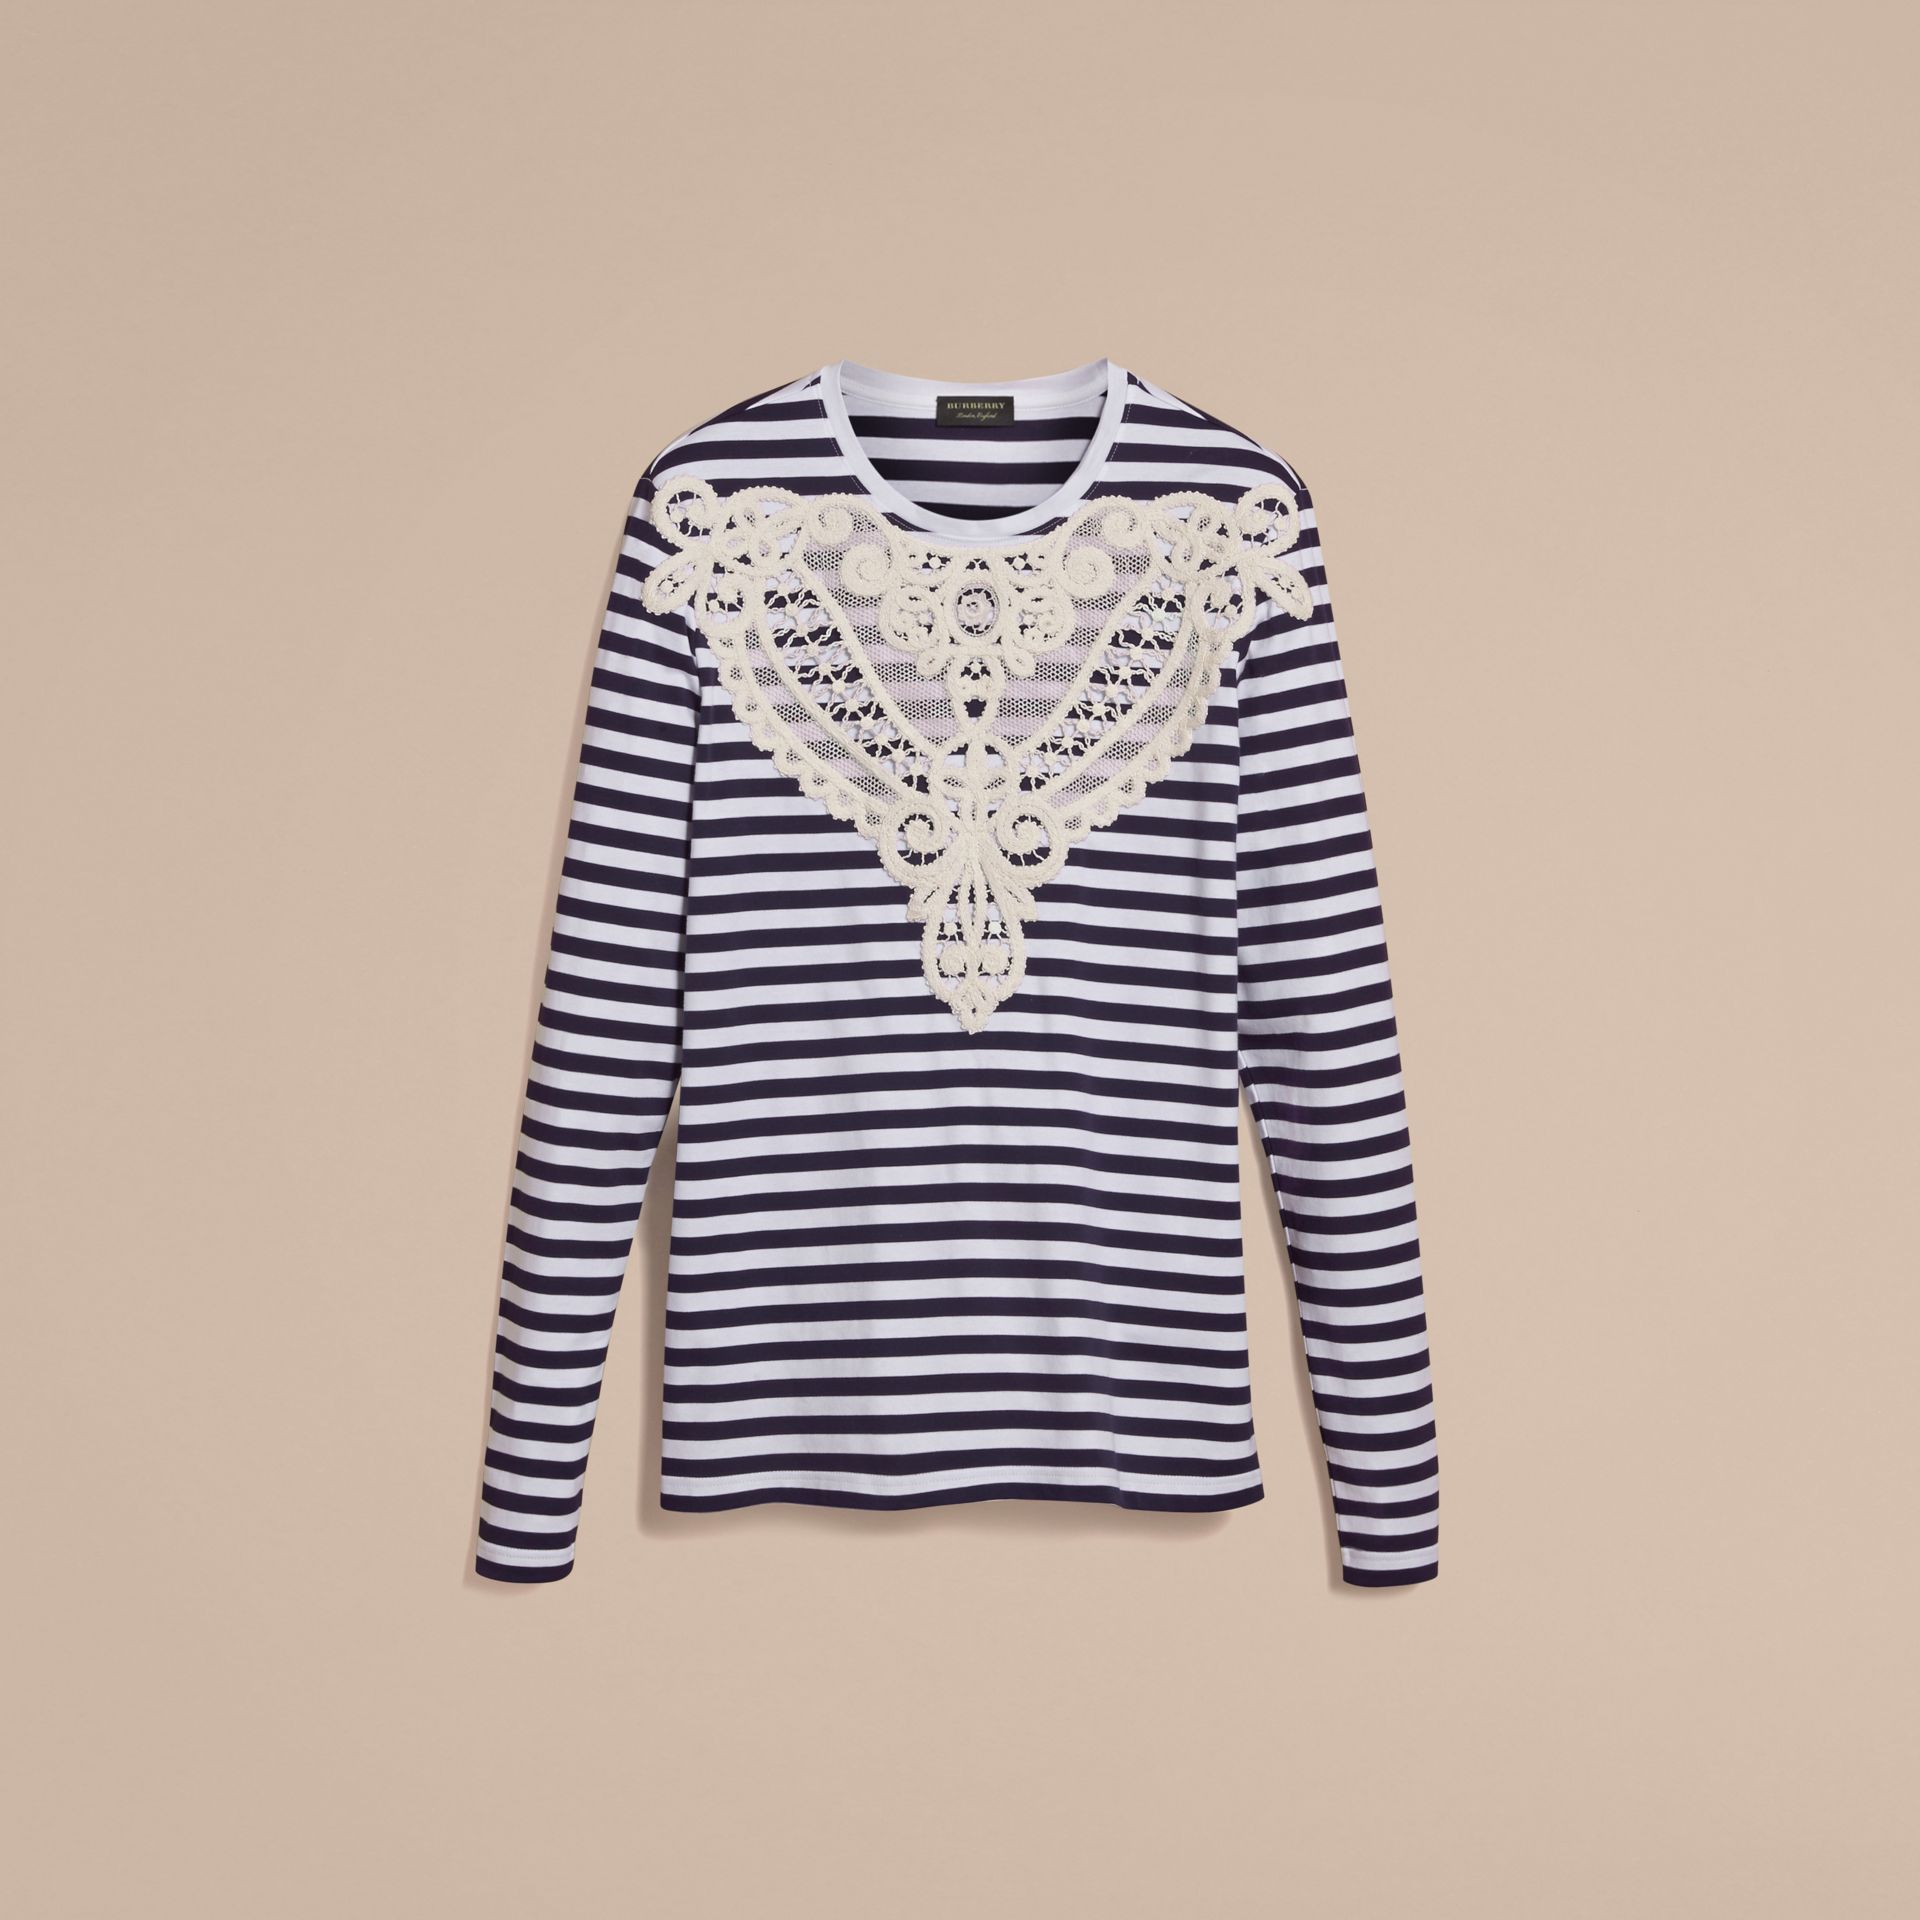 Unisex Lace Appliqué Breton Stripe Cotton Top in Indigo - Women | Burberry - gallery image 3